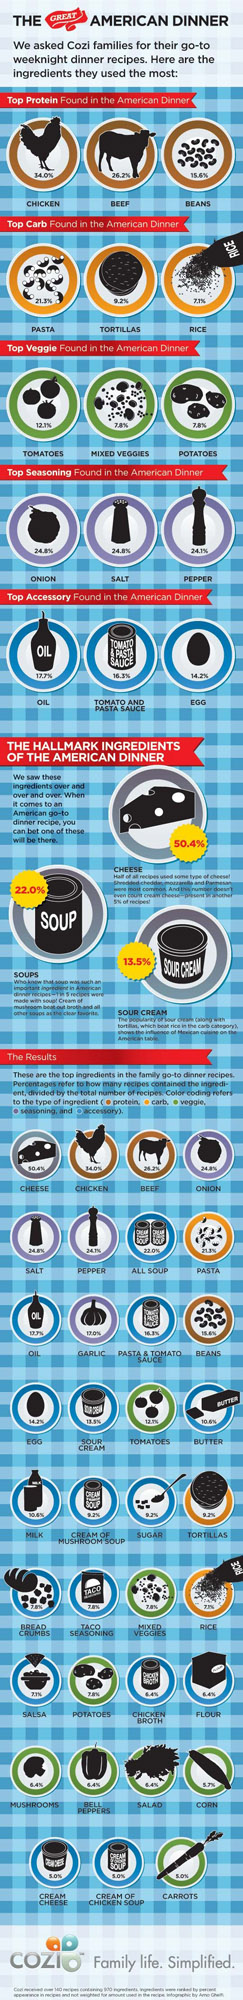 Top dinner ingredients infographic